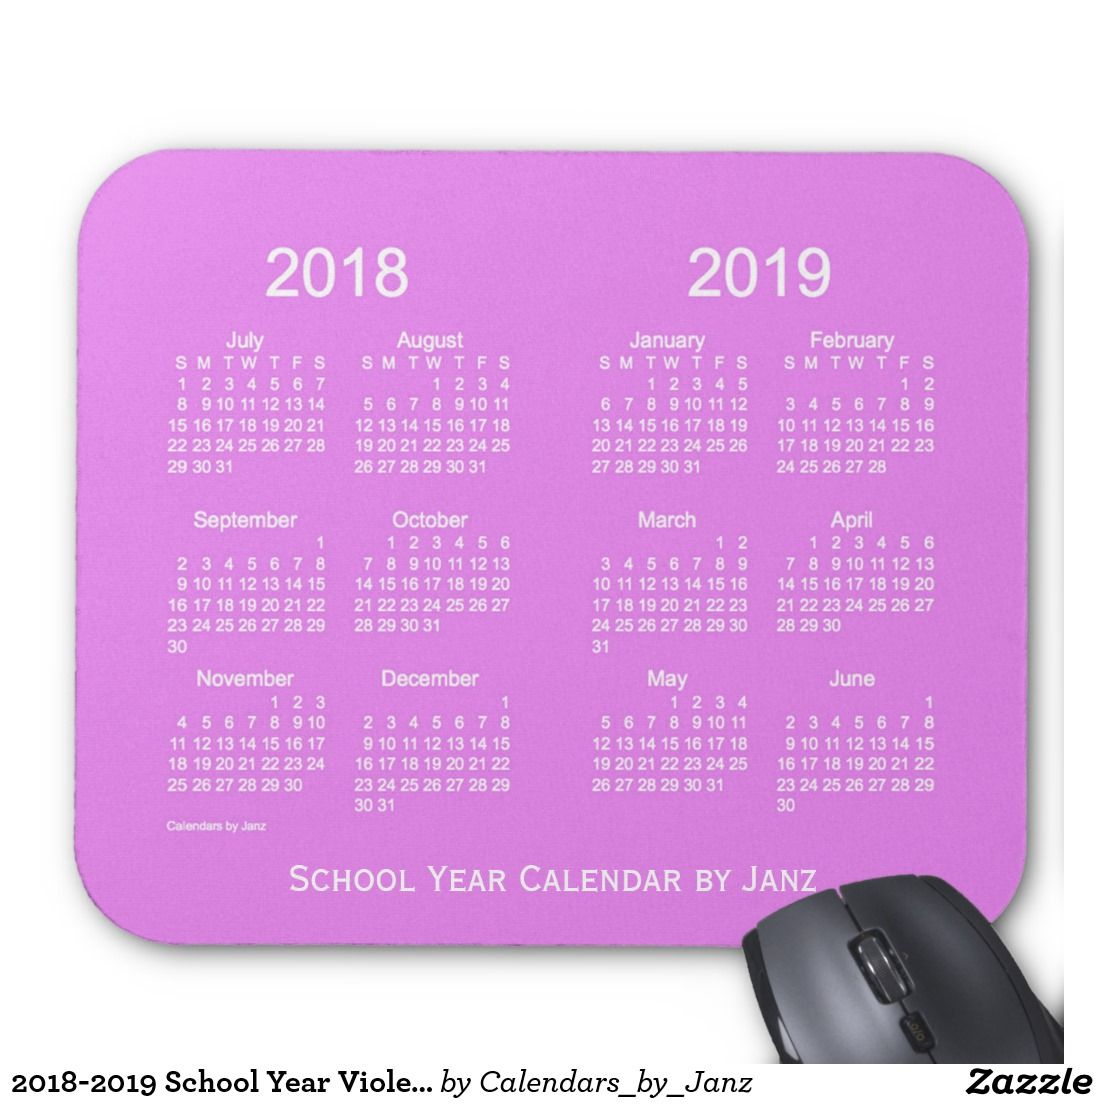 2018-2019 School Year Violet Calendar by Janz Mouse Pad